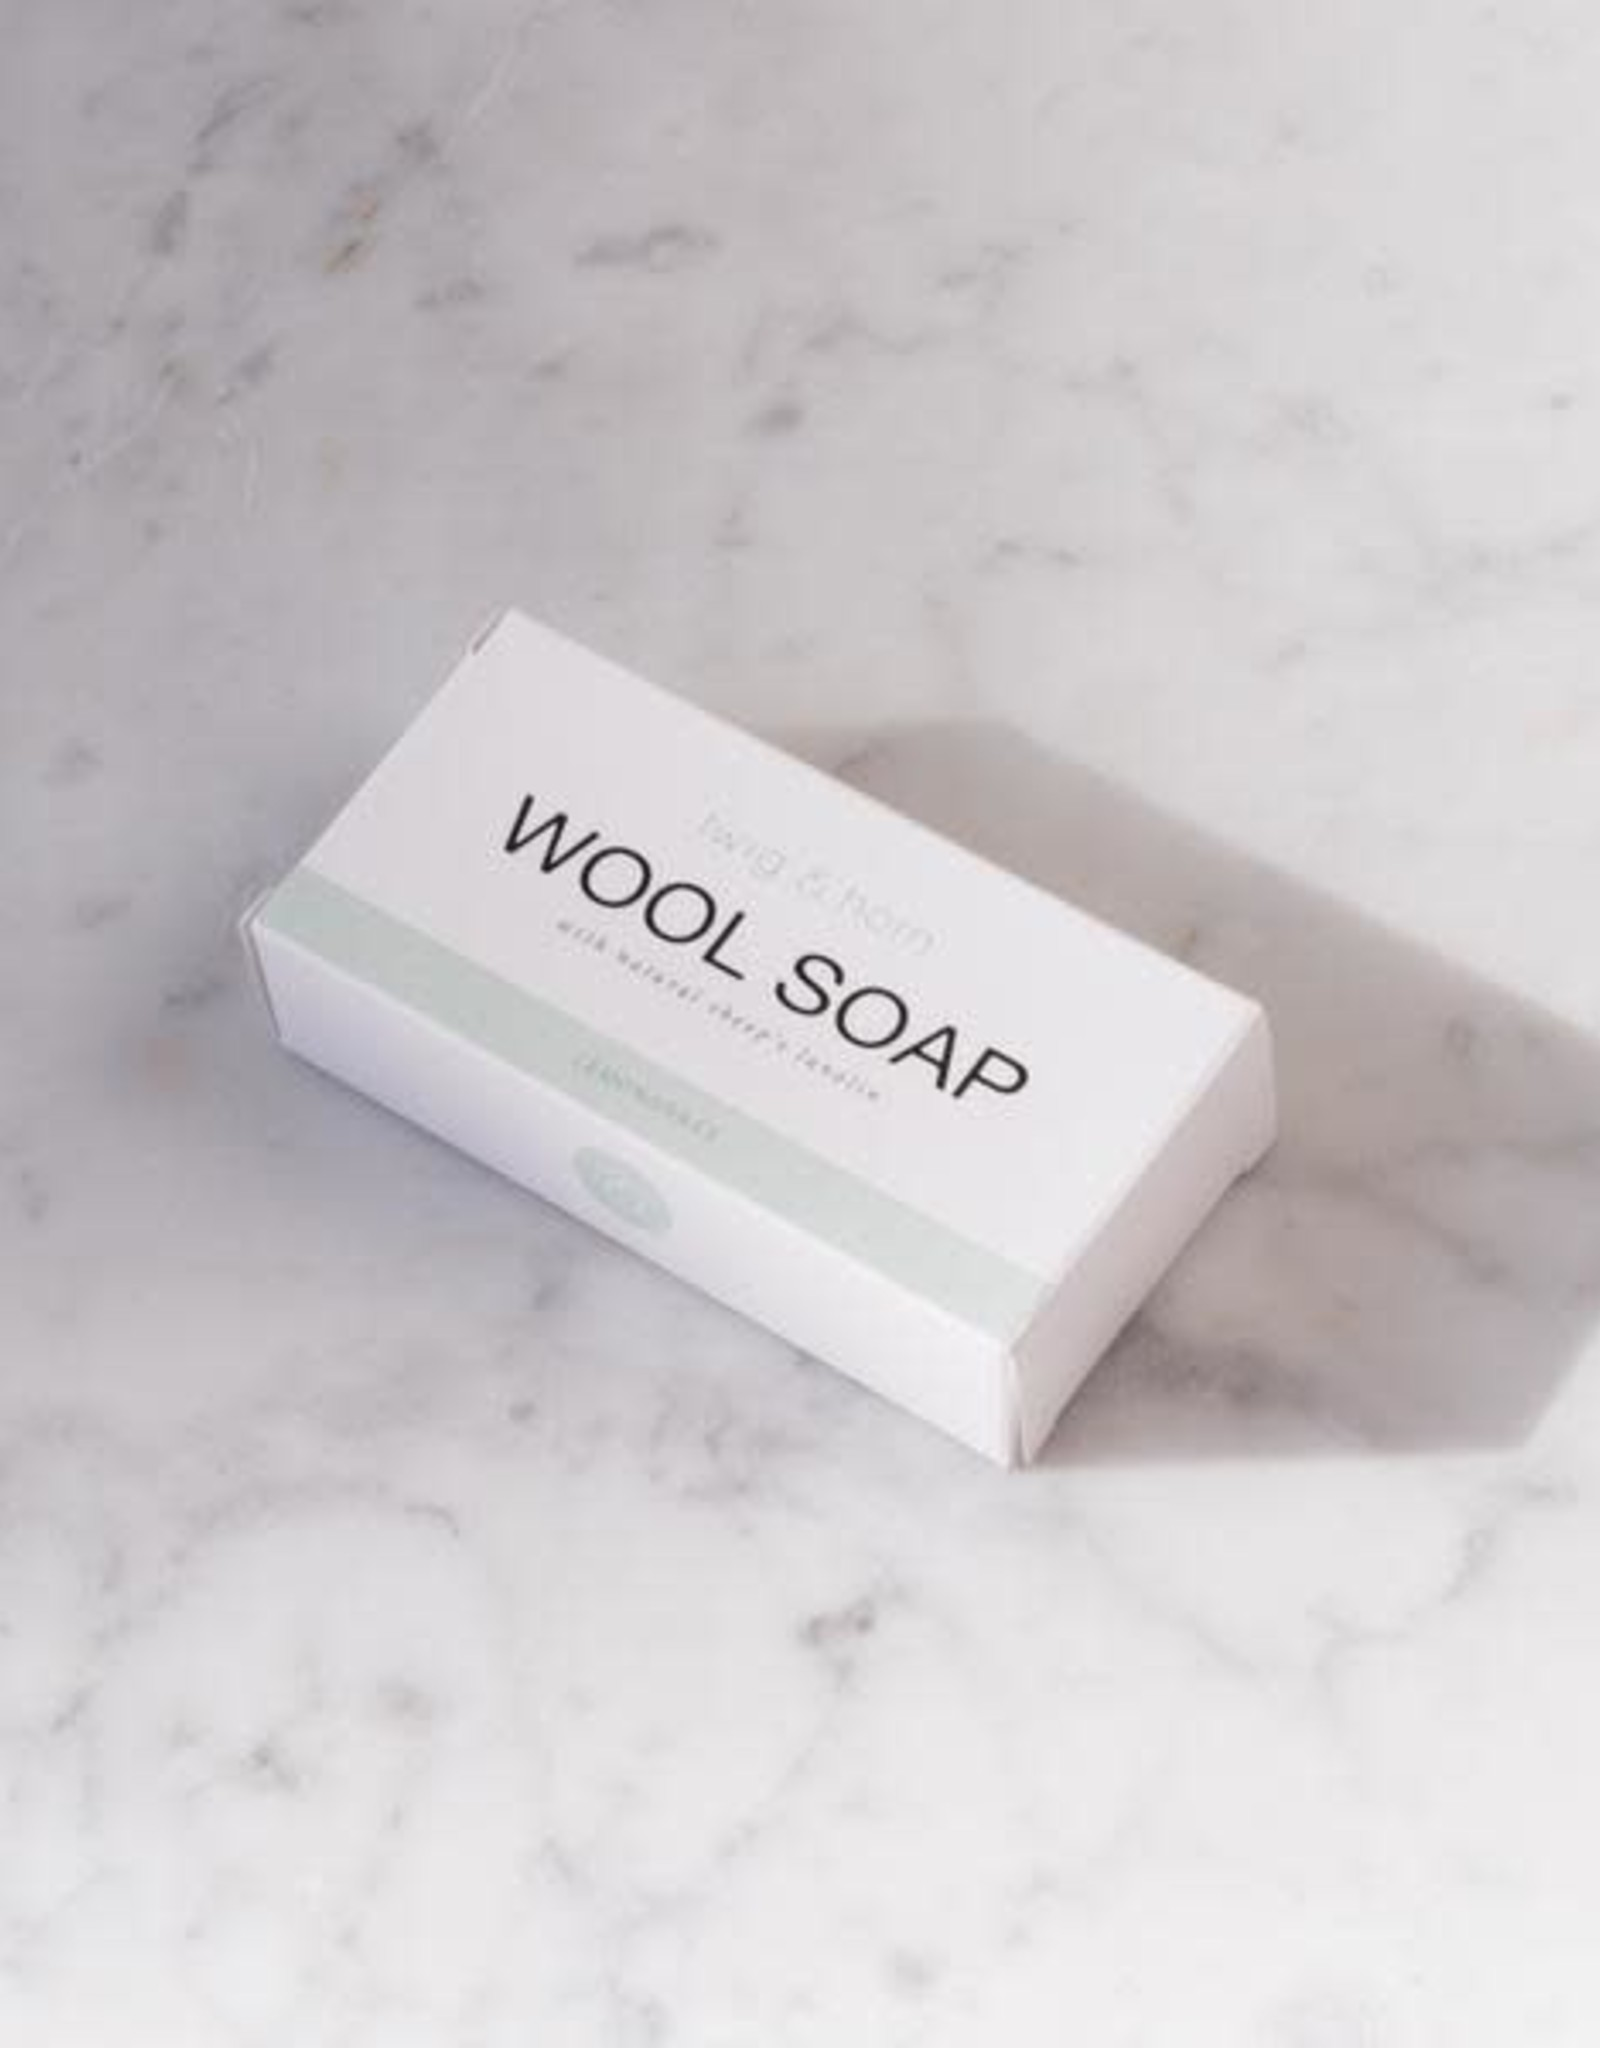 Twig & Horn Twig & Horn Wool Soap Bar